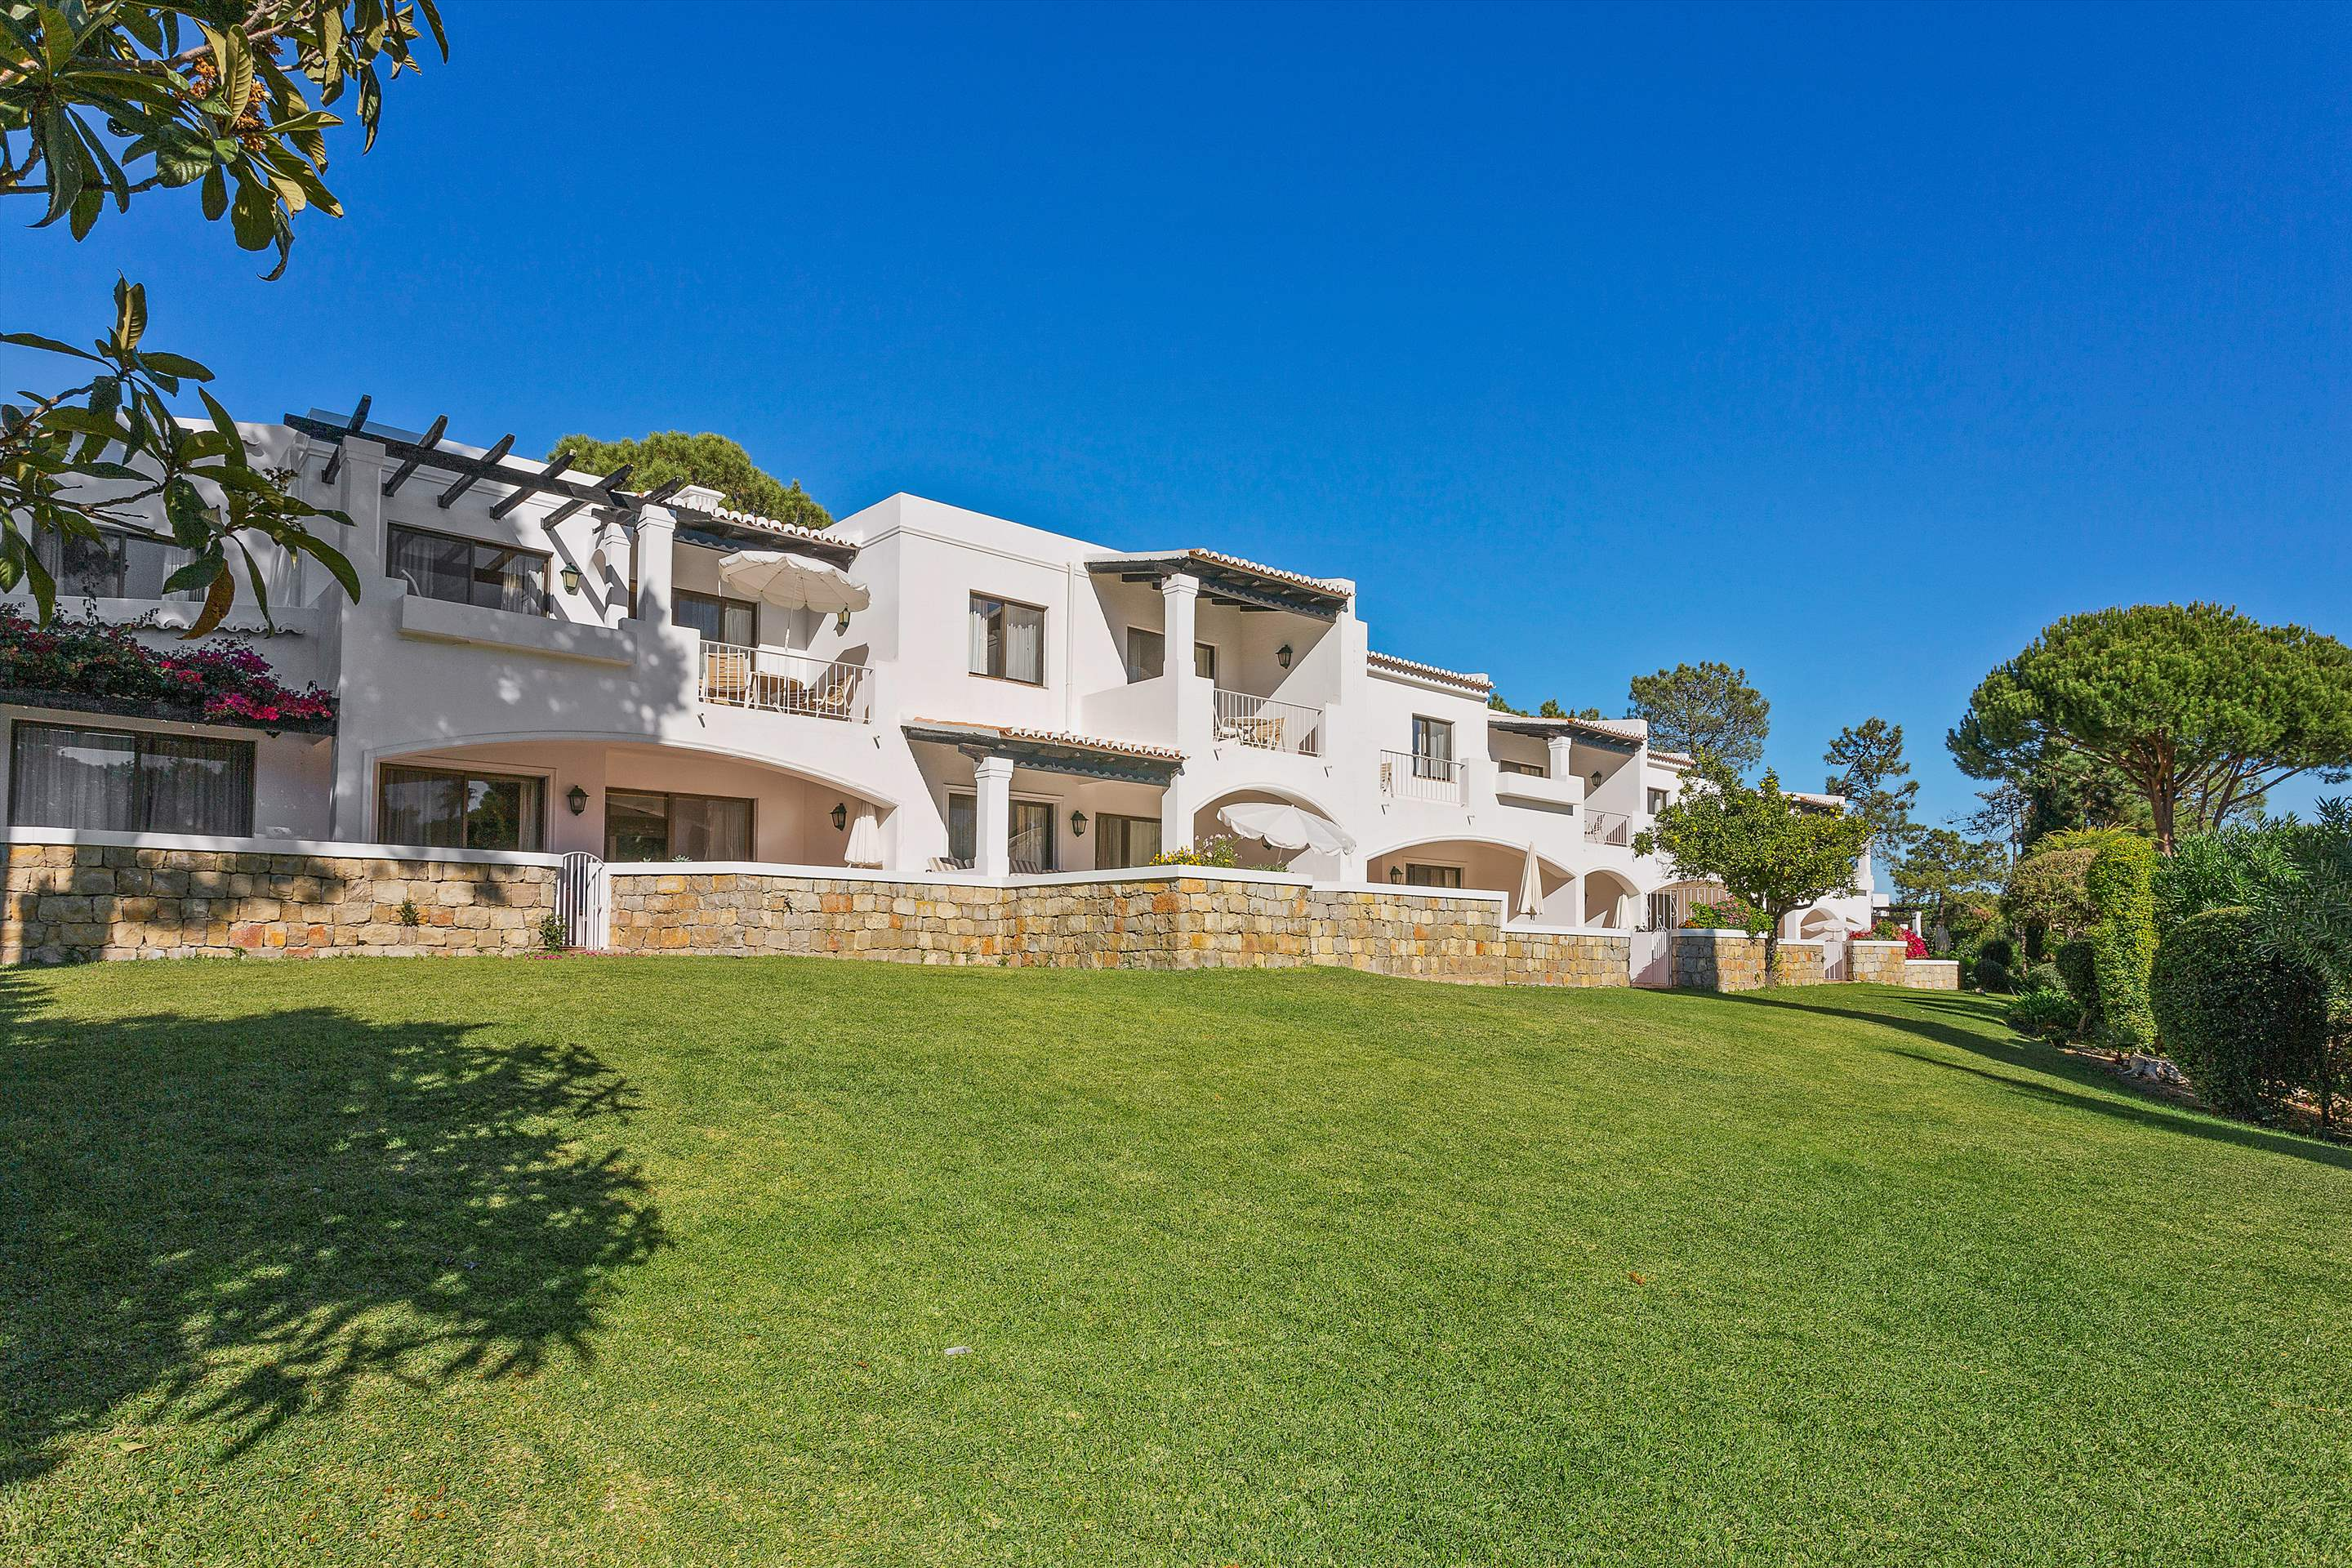 Four Seasons Country Club 2 Bed Townhouse, Superior - Sunday Arrival, 2 bedroom apartment in Four Seasons Country Club, Algarve